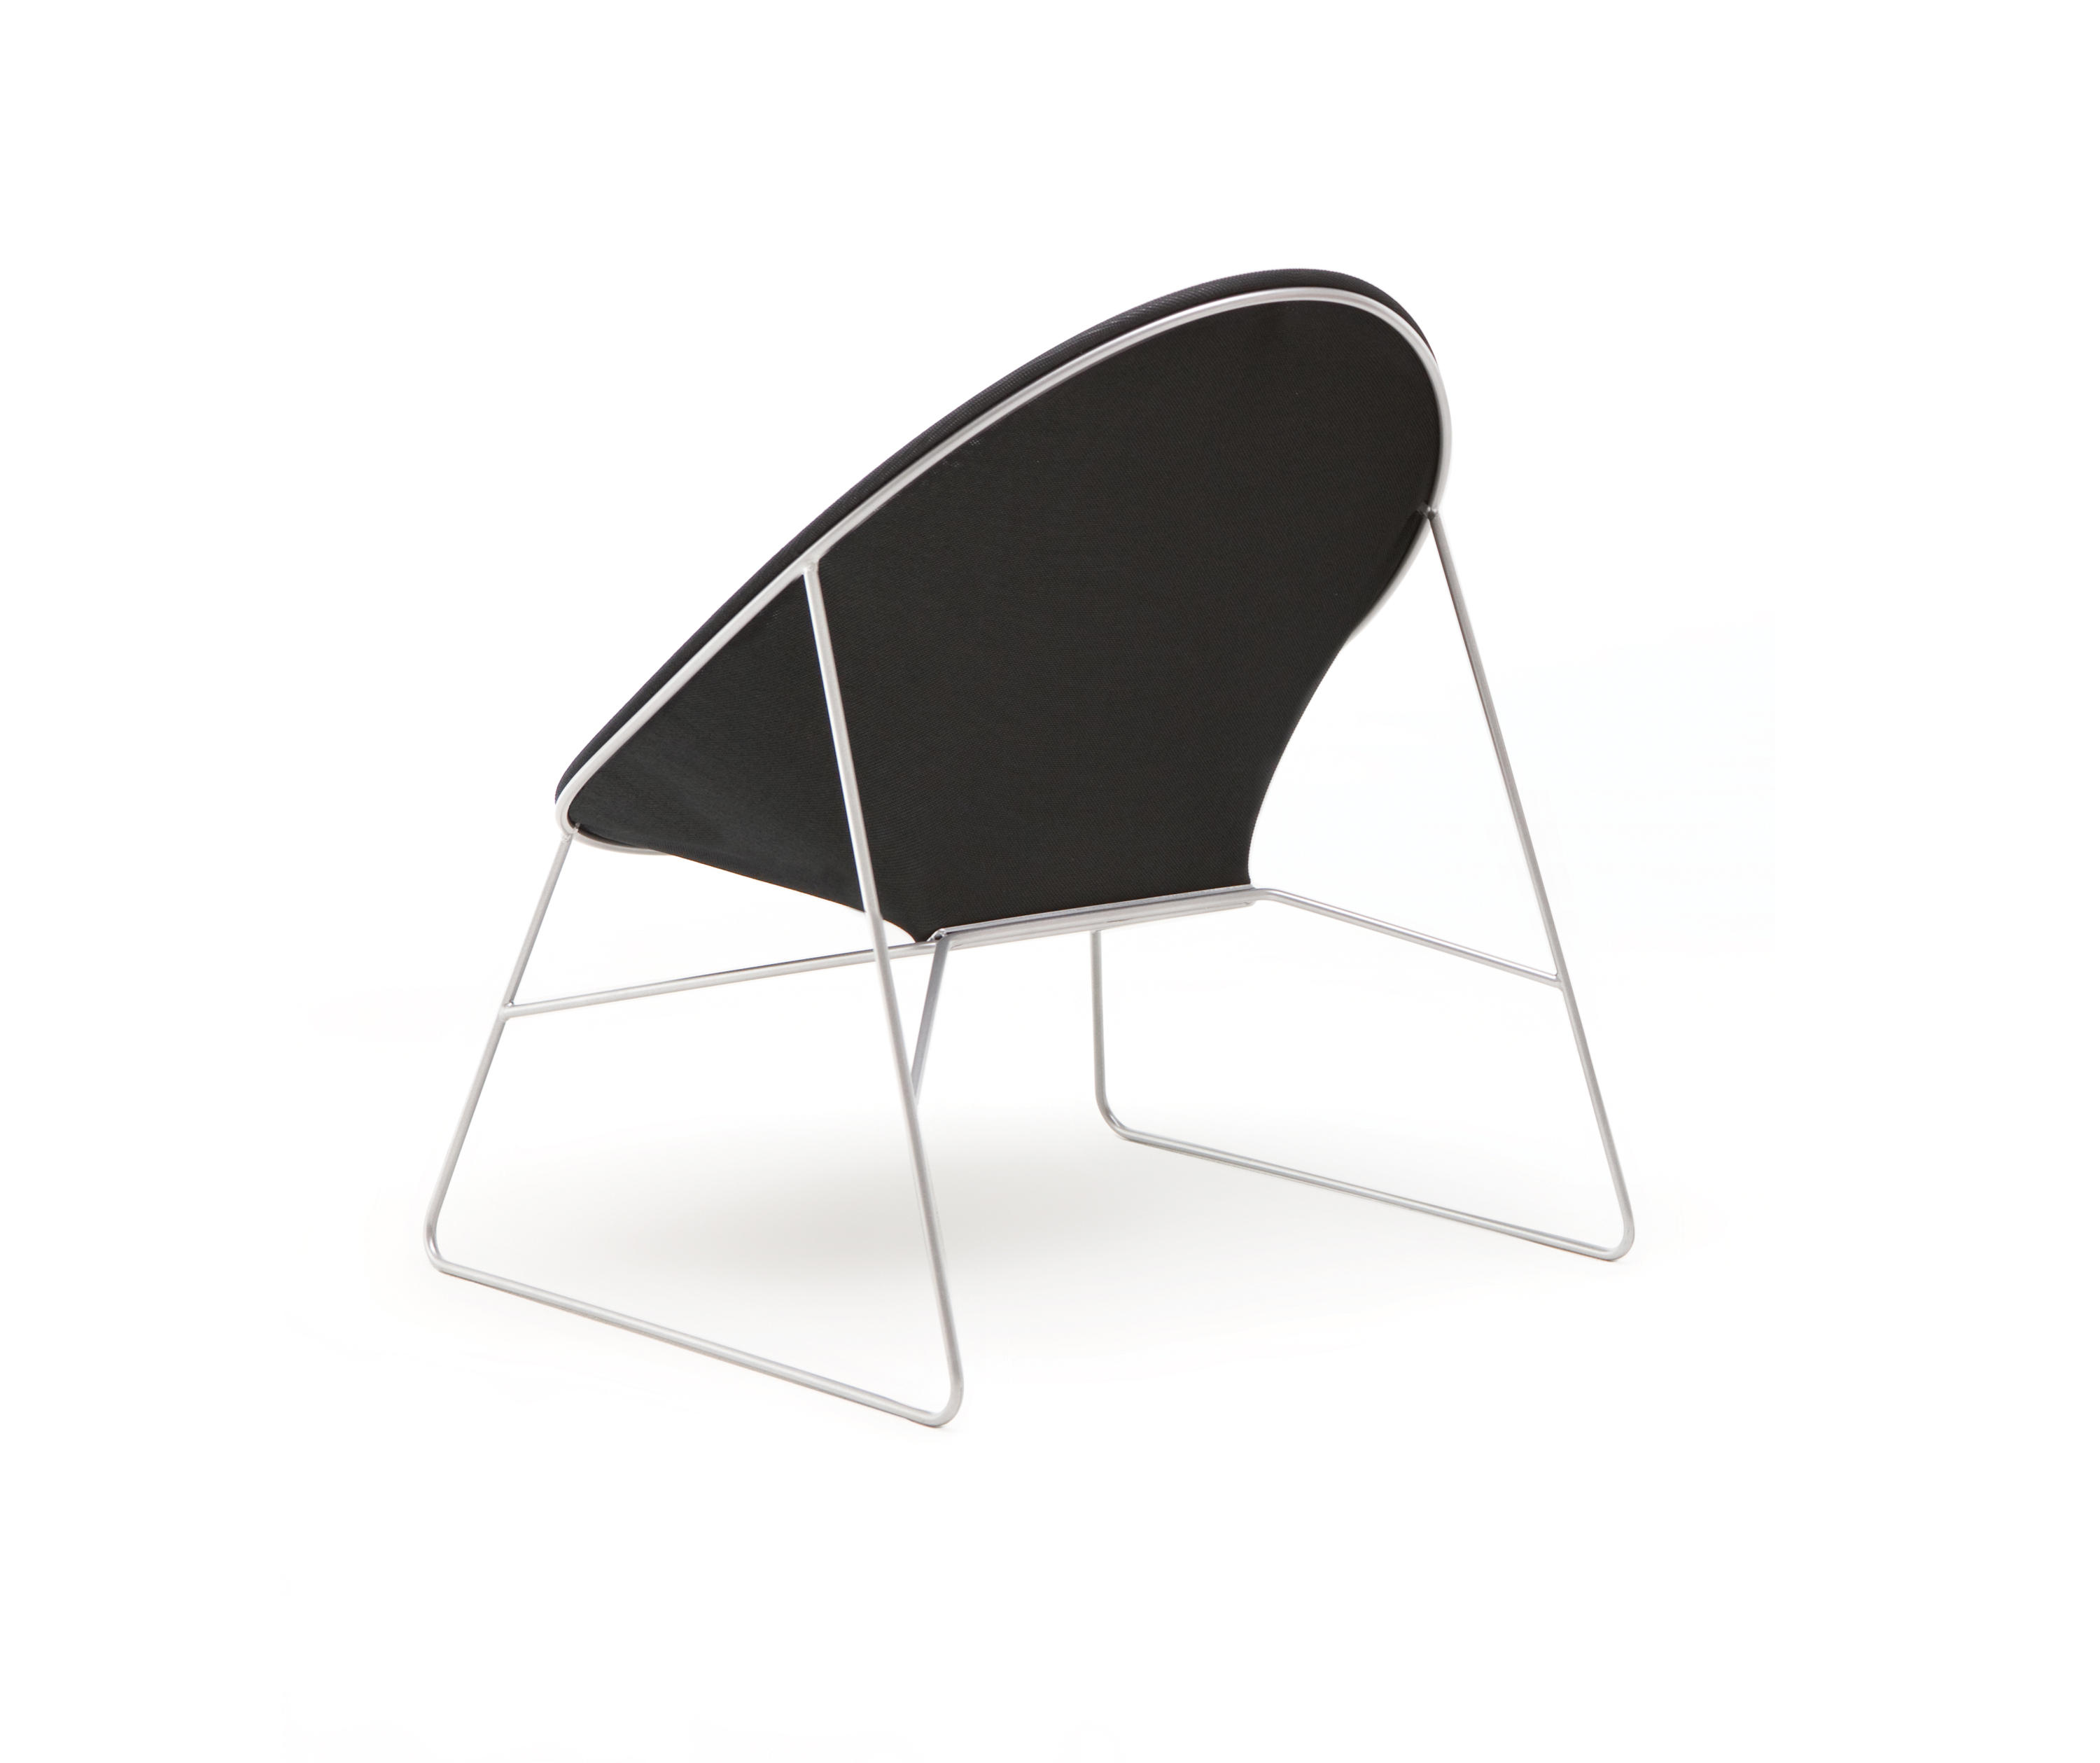 cocoon by nienkmper lounge chairs cocoon by nienkmper lounge chairs